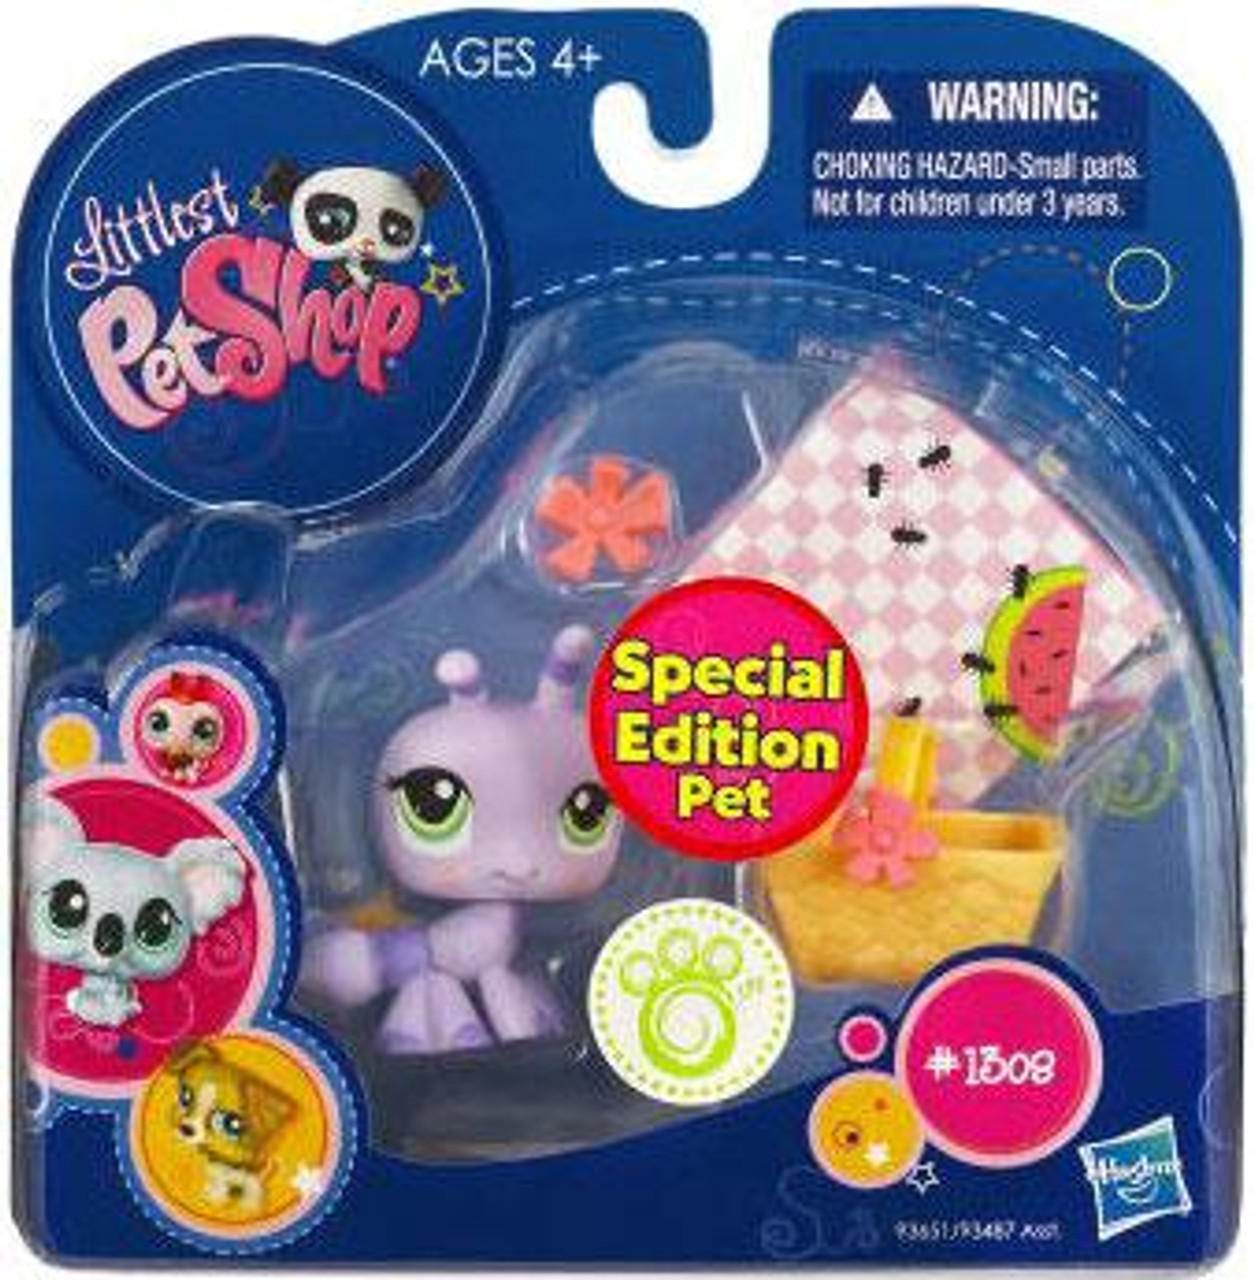 Littlest Pet Shop 2010 Assortment A Series 1 Ant Figure #1308 [Picnic Accessories]